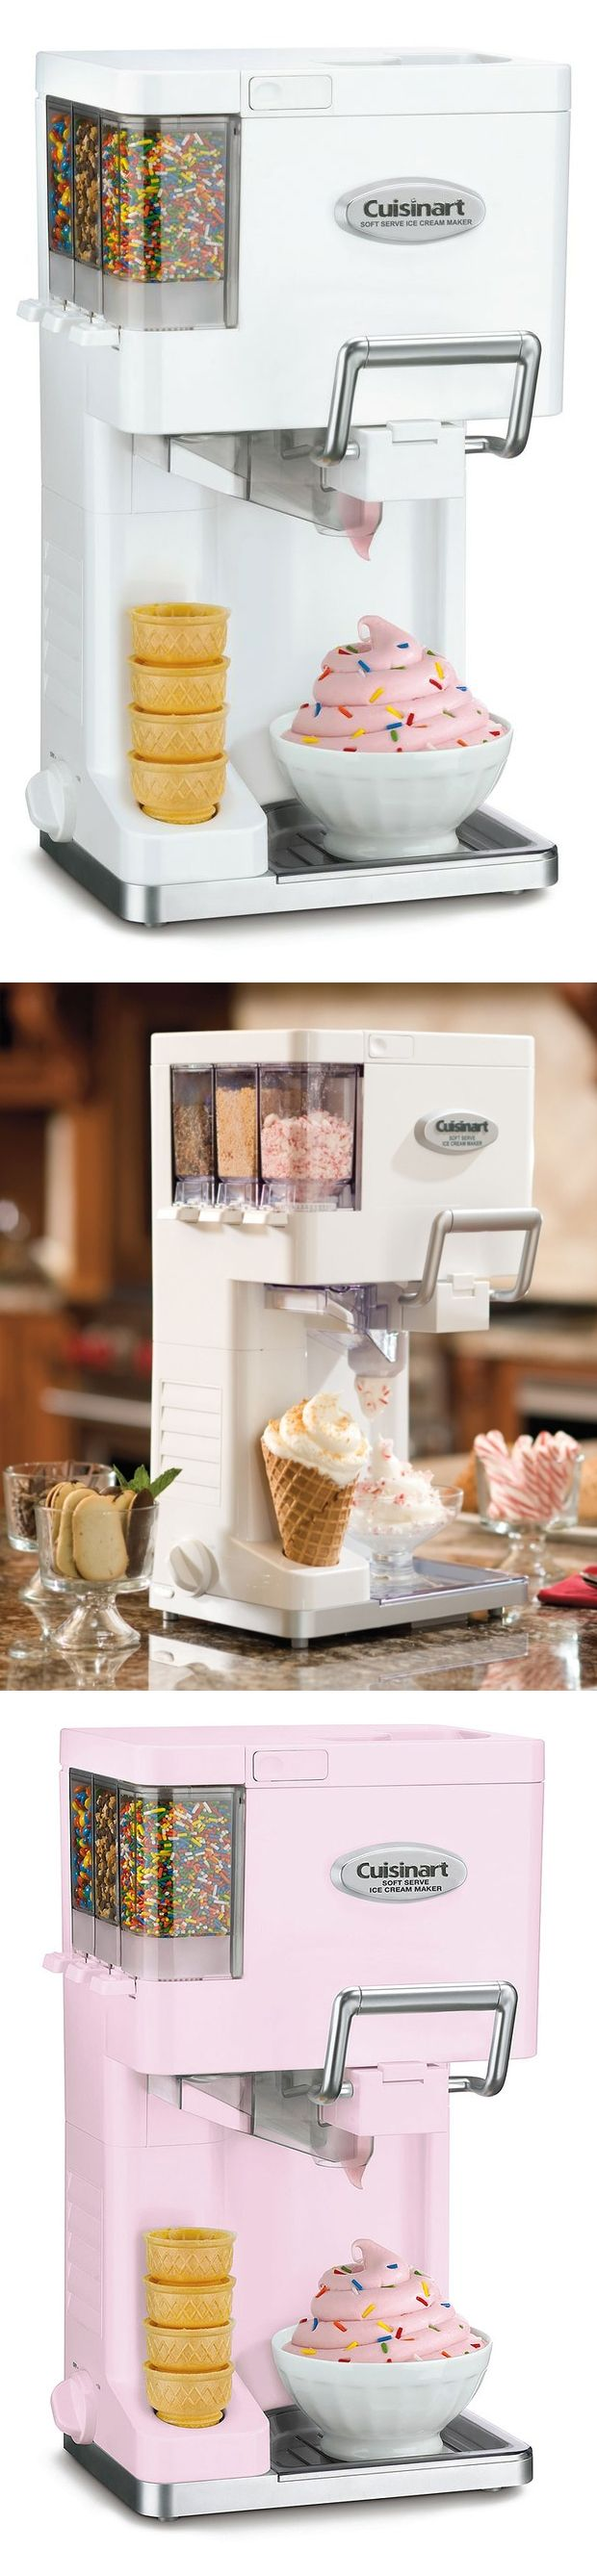 Cuisinart Mix It In Soft-Serve Ice Cream Maker -- I could make my own mcflurry